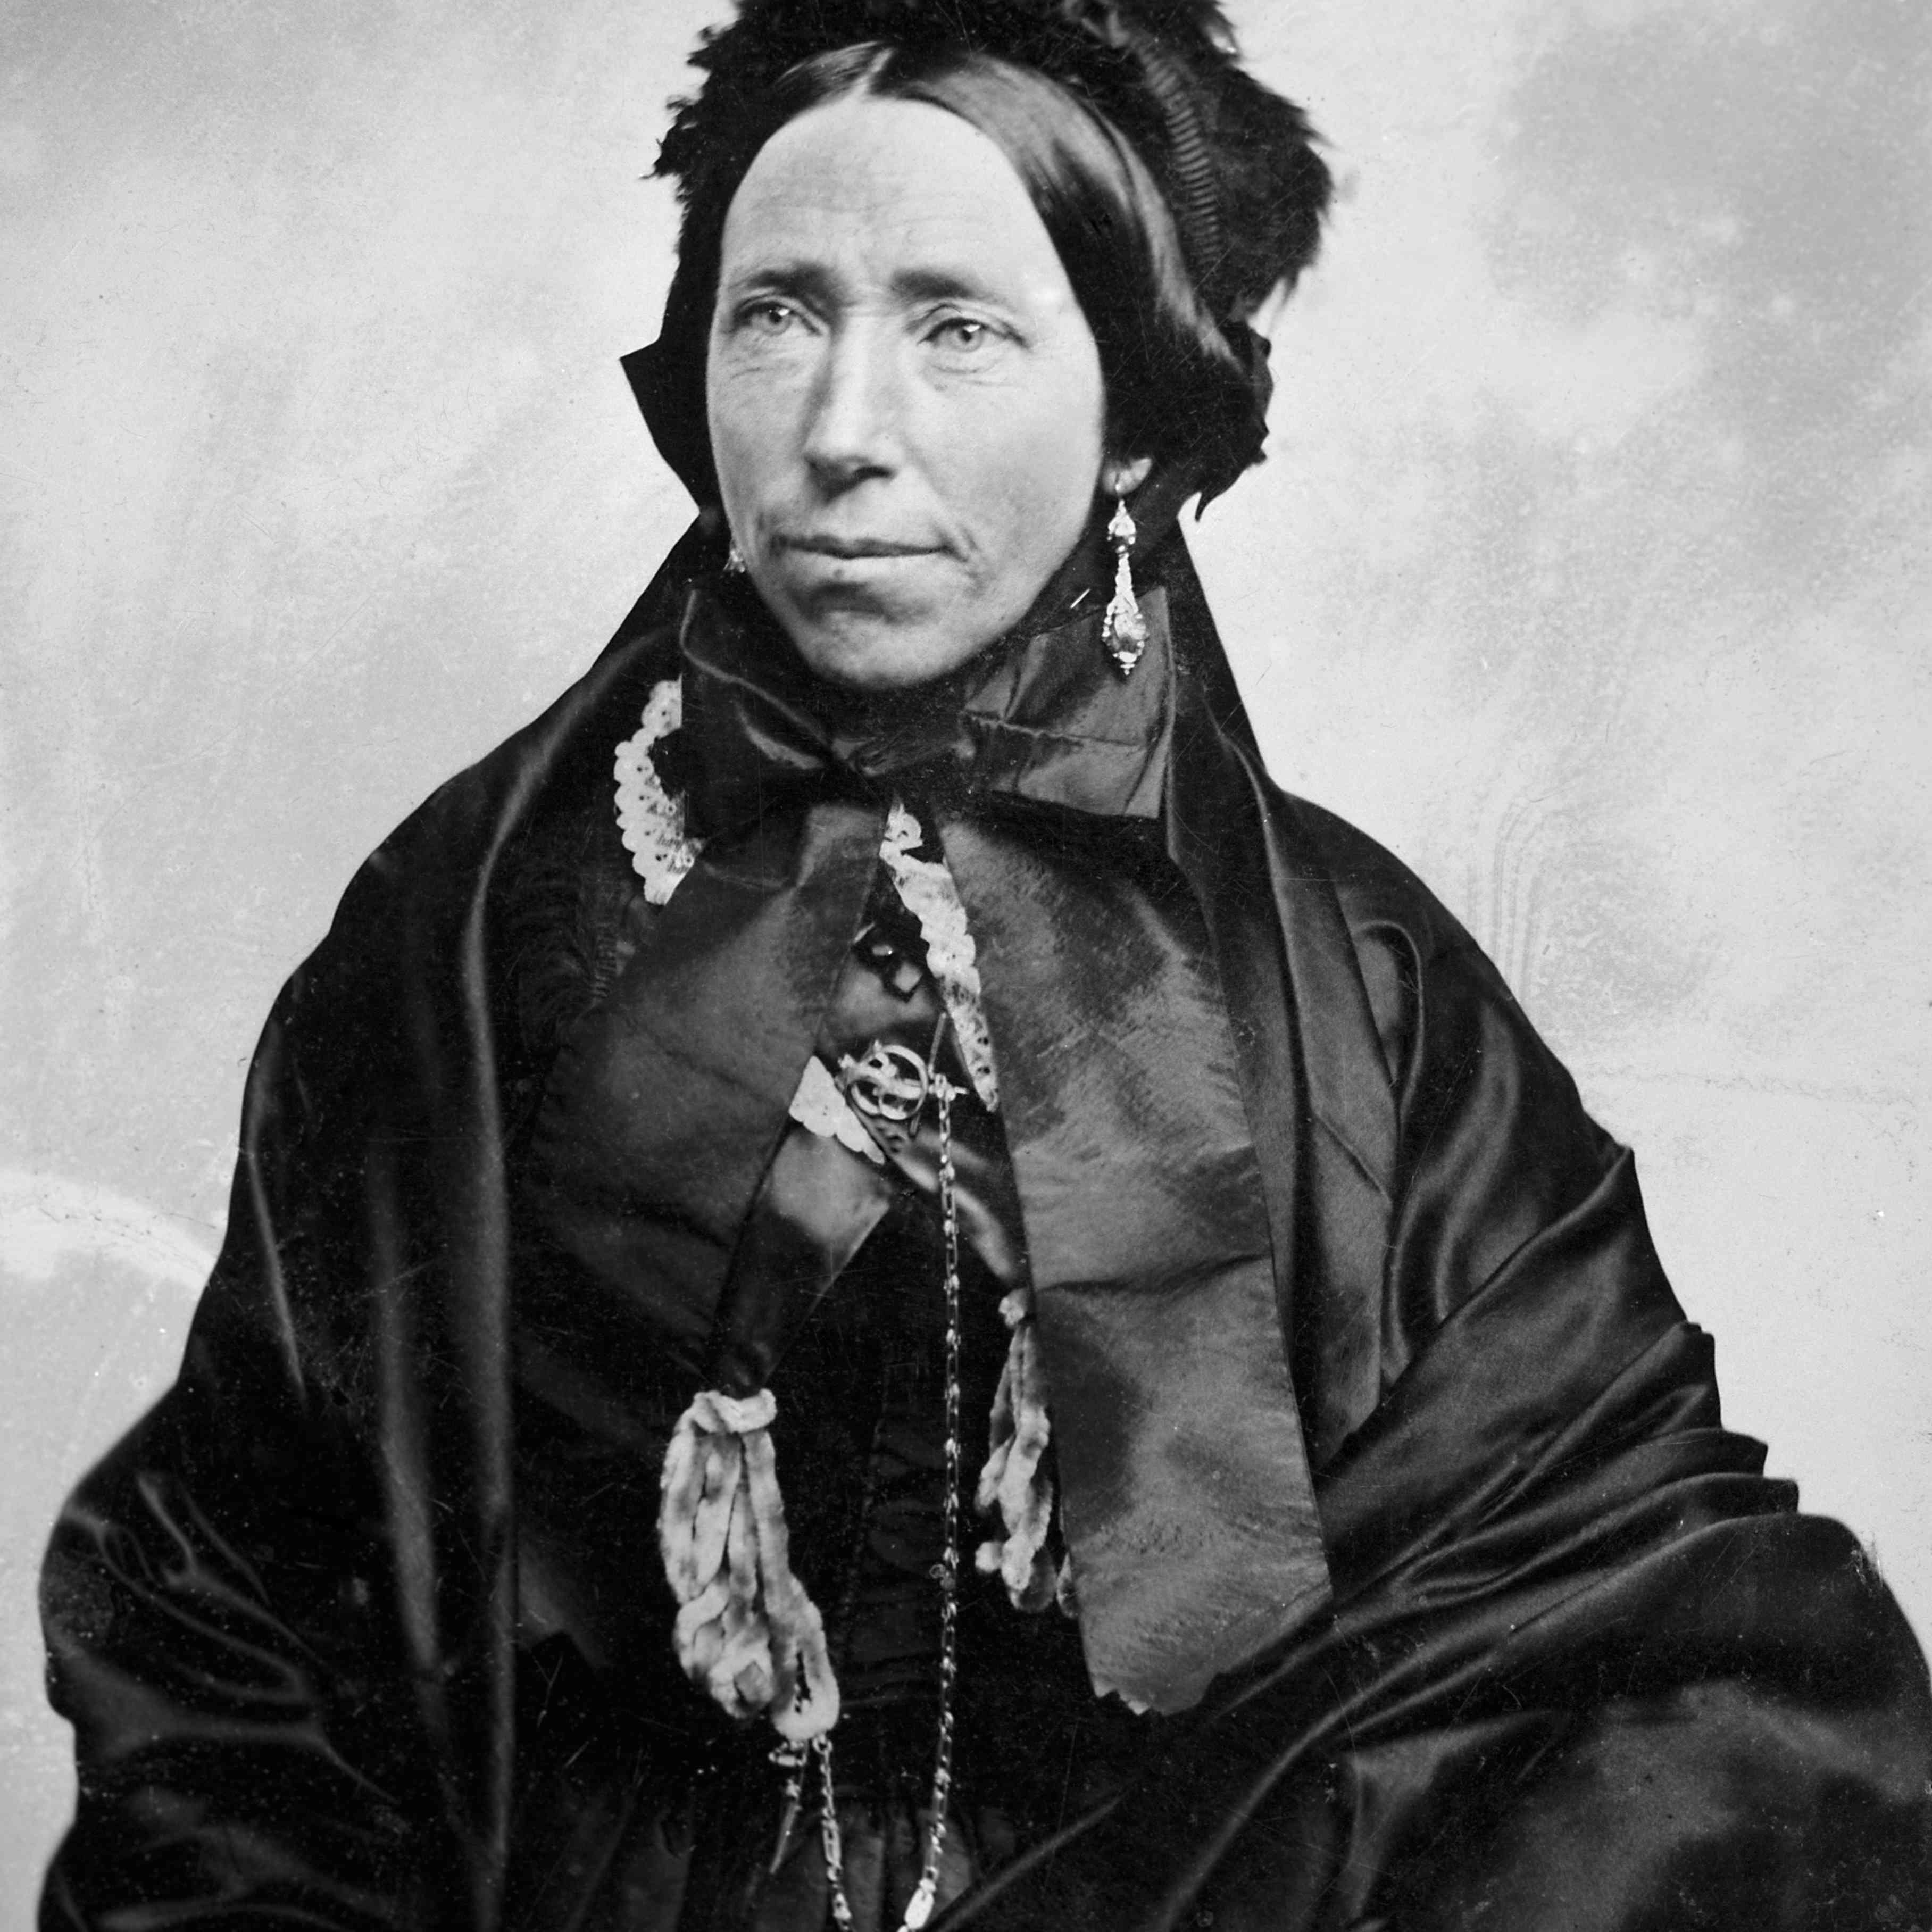 Mature woman in mourning clothes poses for tintype portrait, ca. 1880.